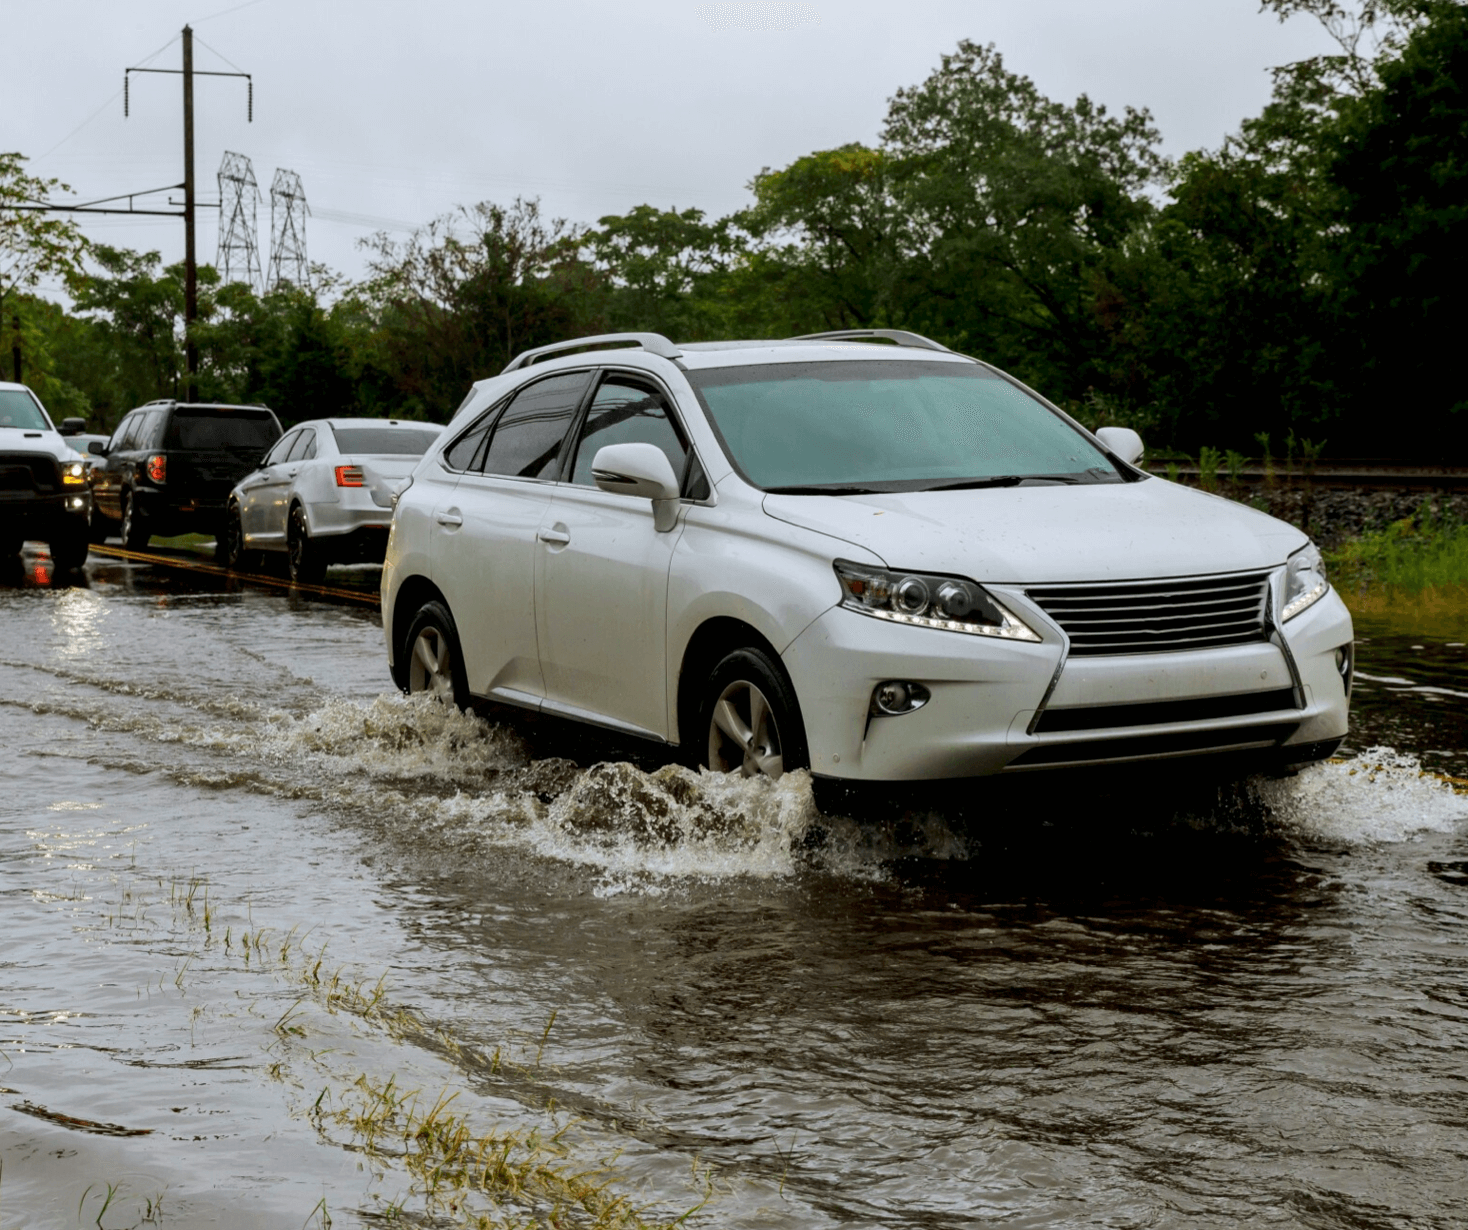 Is Flood Damage Car Repairable